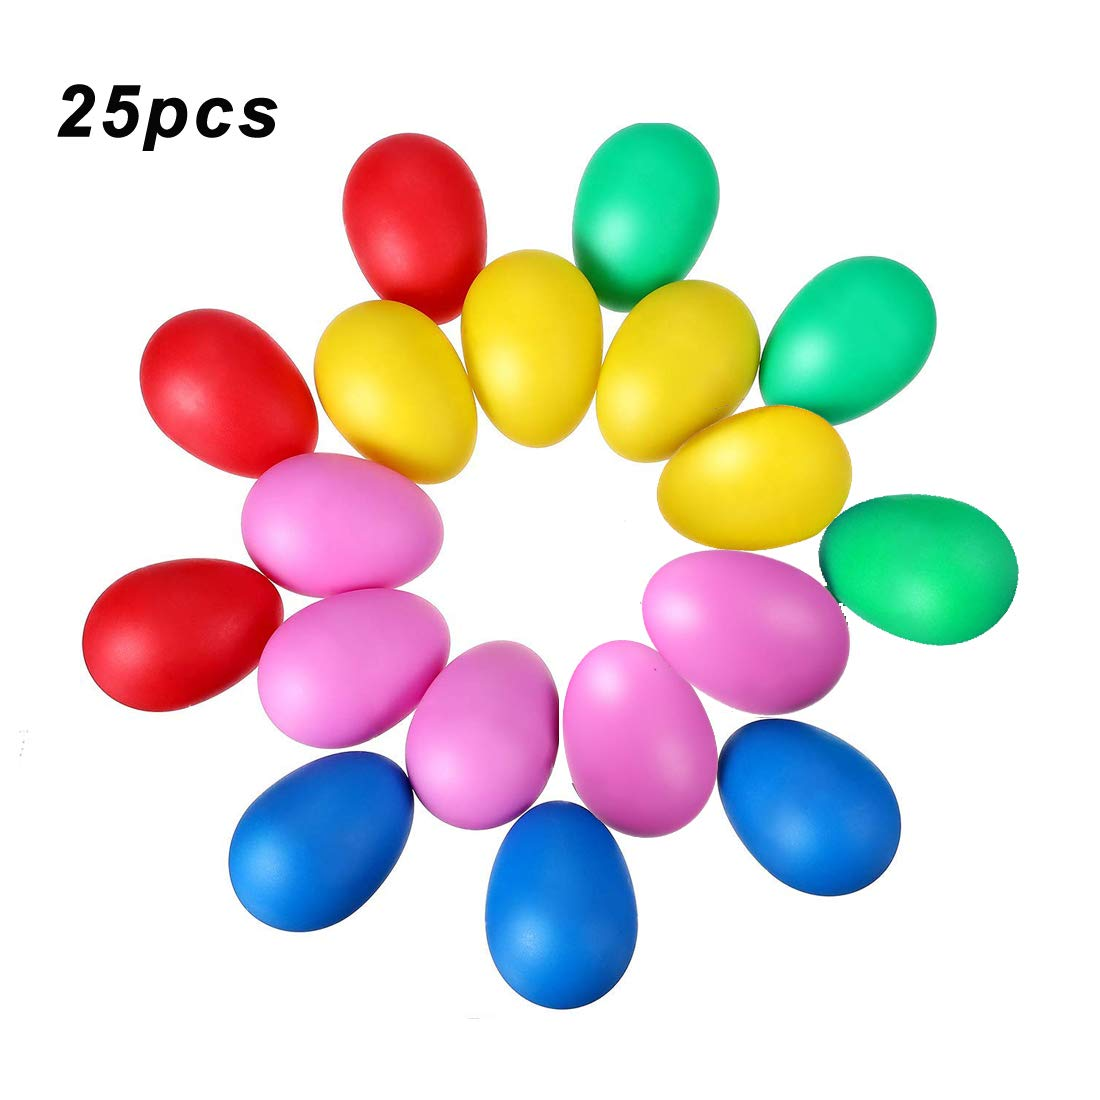 25pcs Plastic Egg Shakers Set with 5 Different Colors, DUTISON Percussion Musical Egg Maracas Child Kids Toys